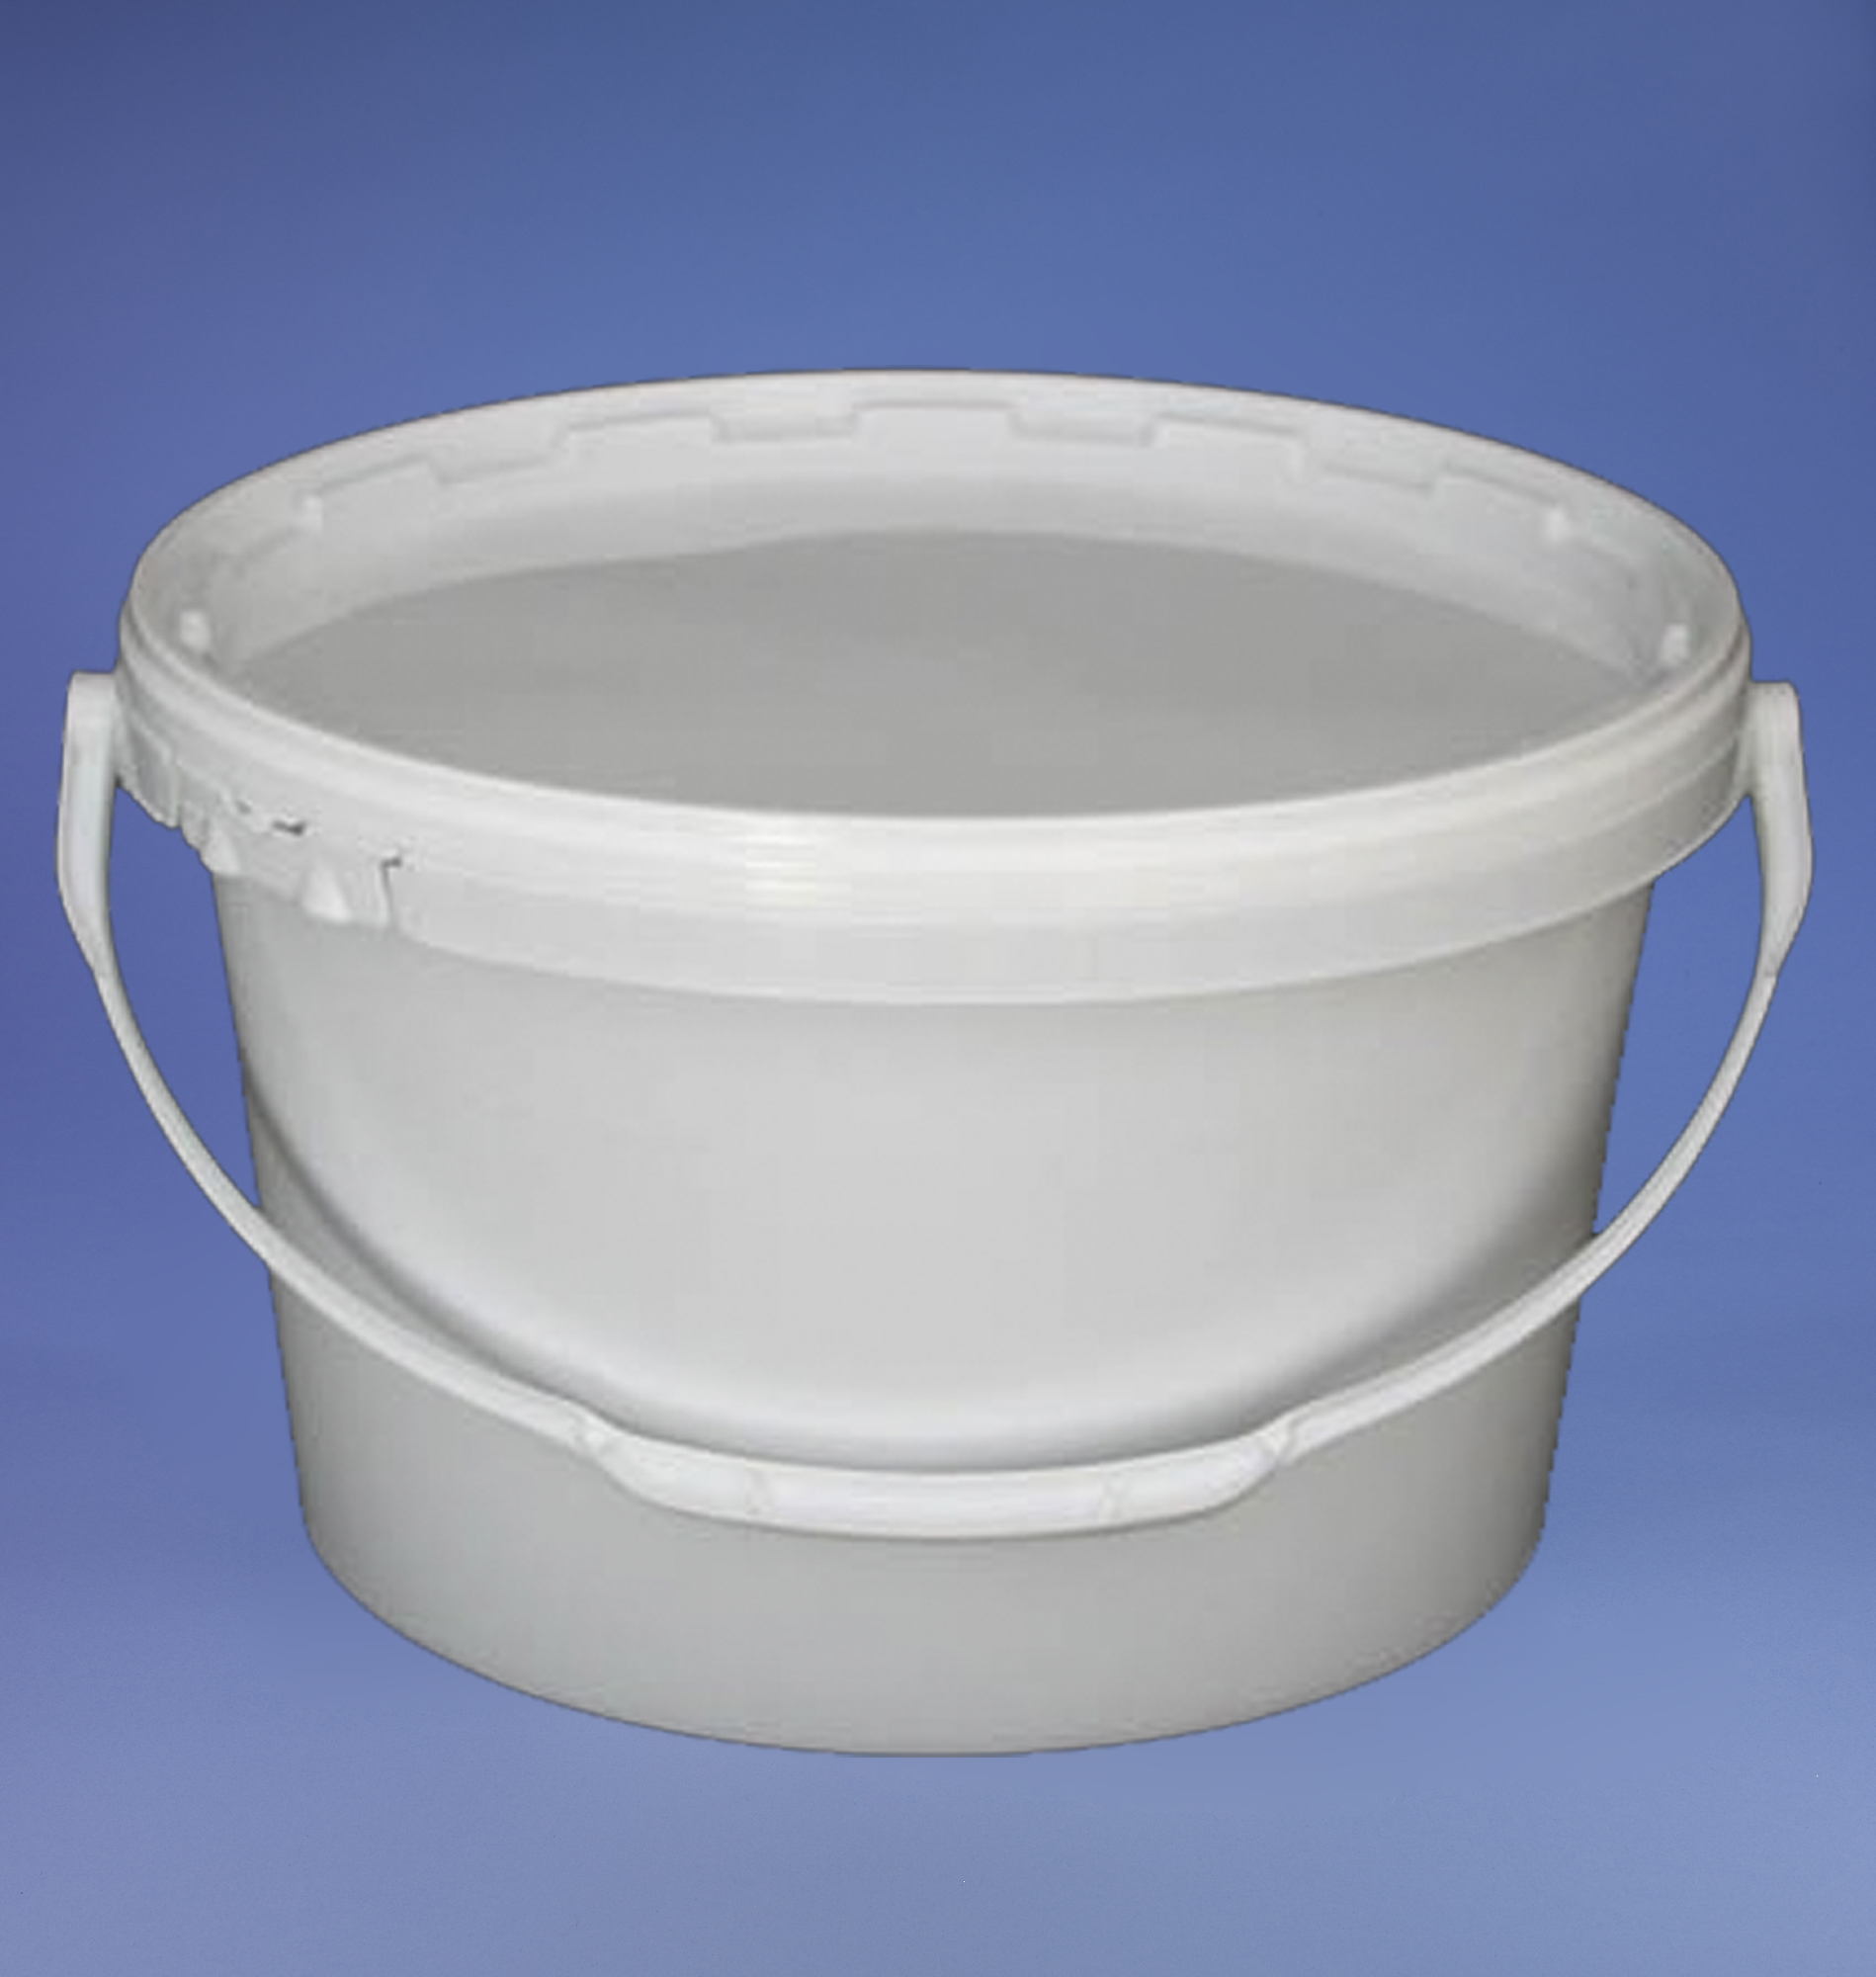 PB2OW Oval Bucket 2.3L